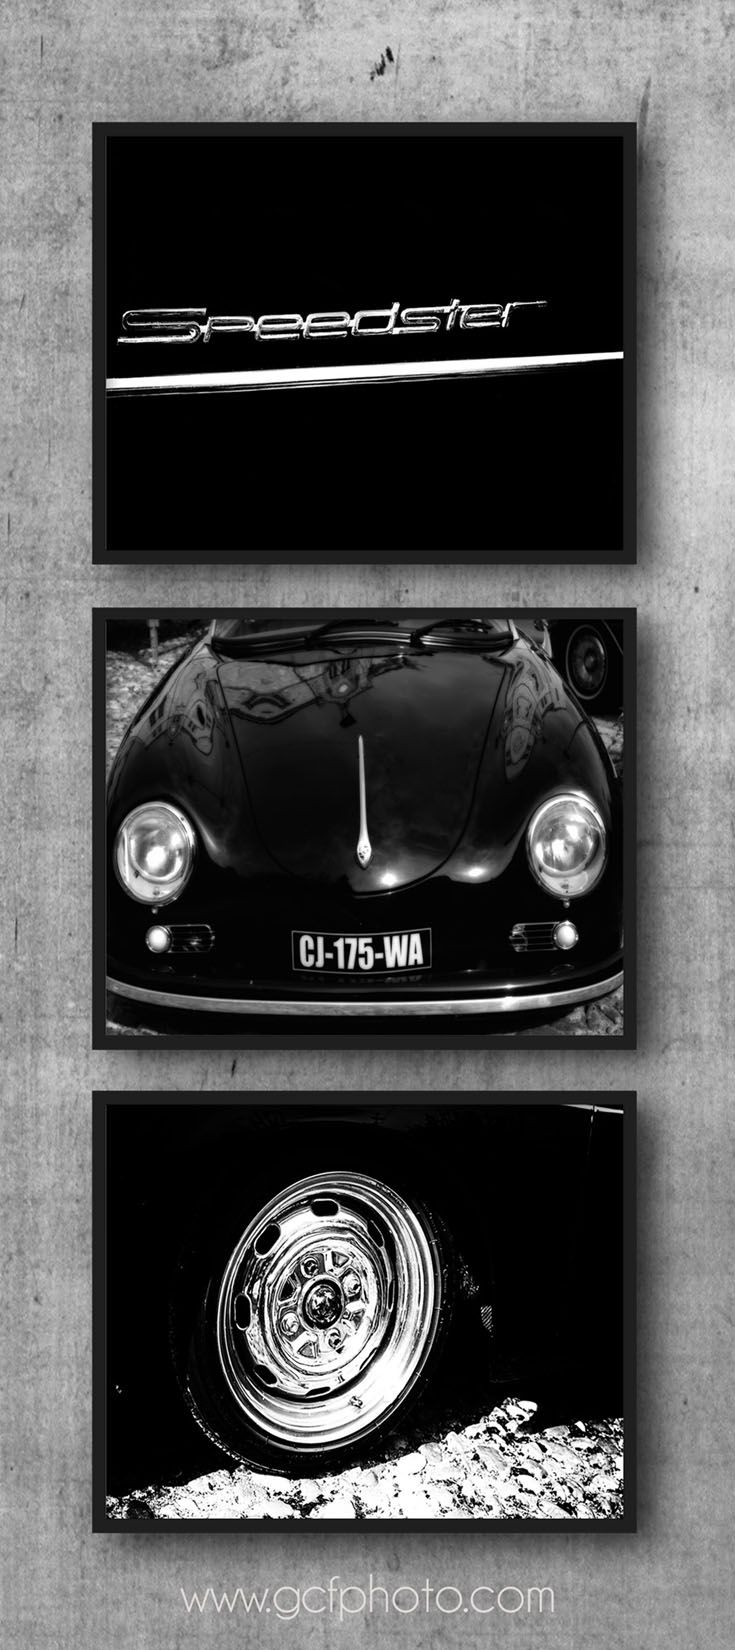 Black & white Porsche Speedster photo print set of 3 from $36. Click to see details and options. #Porsche1600 #PorscheSpeedster #356 #decorhome #homedecor #walldecor #decorideas